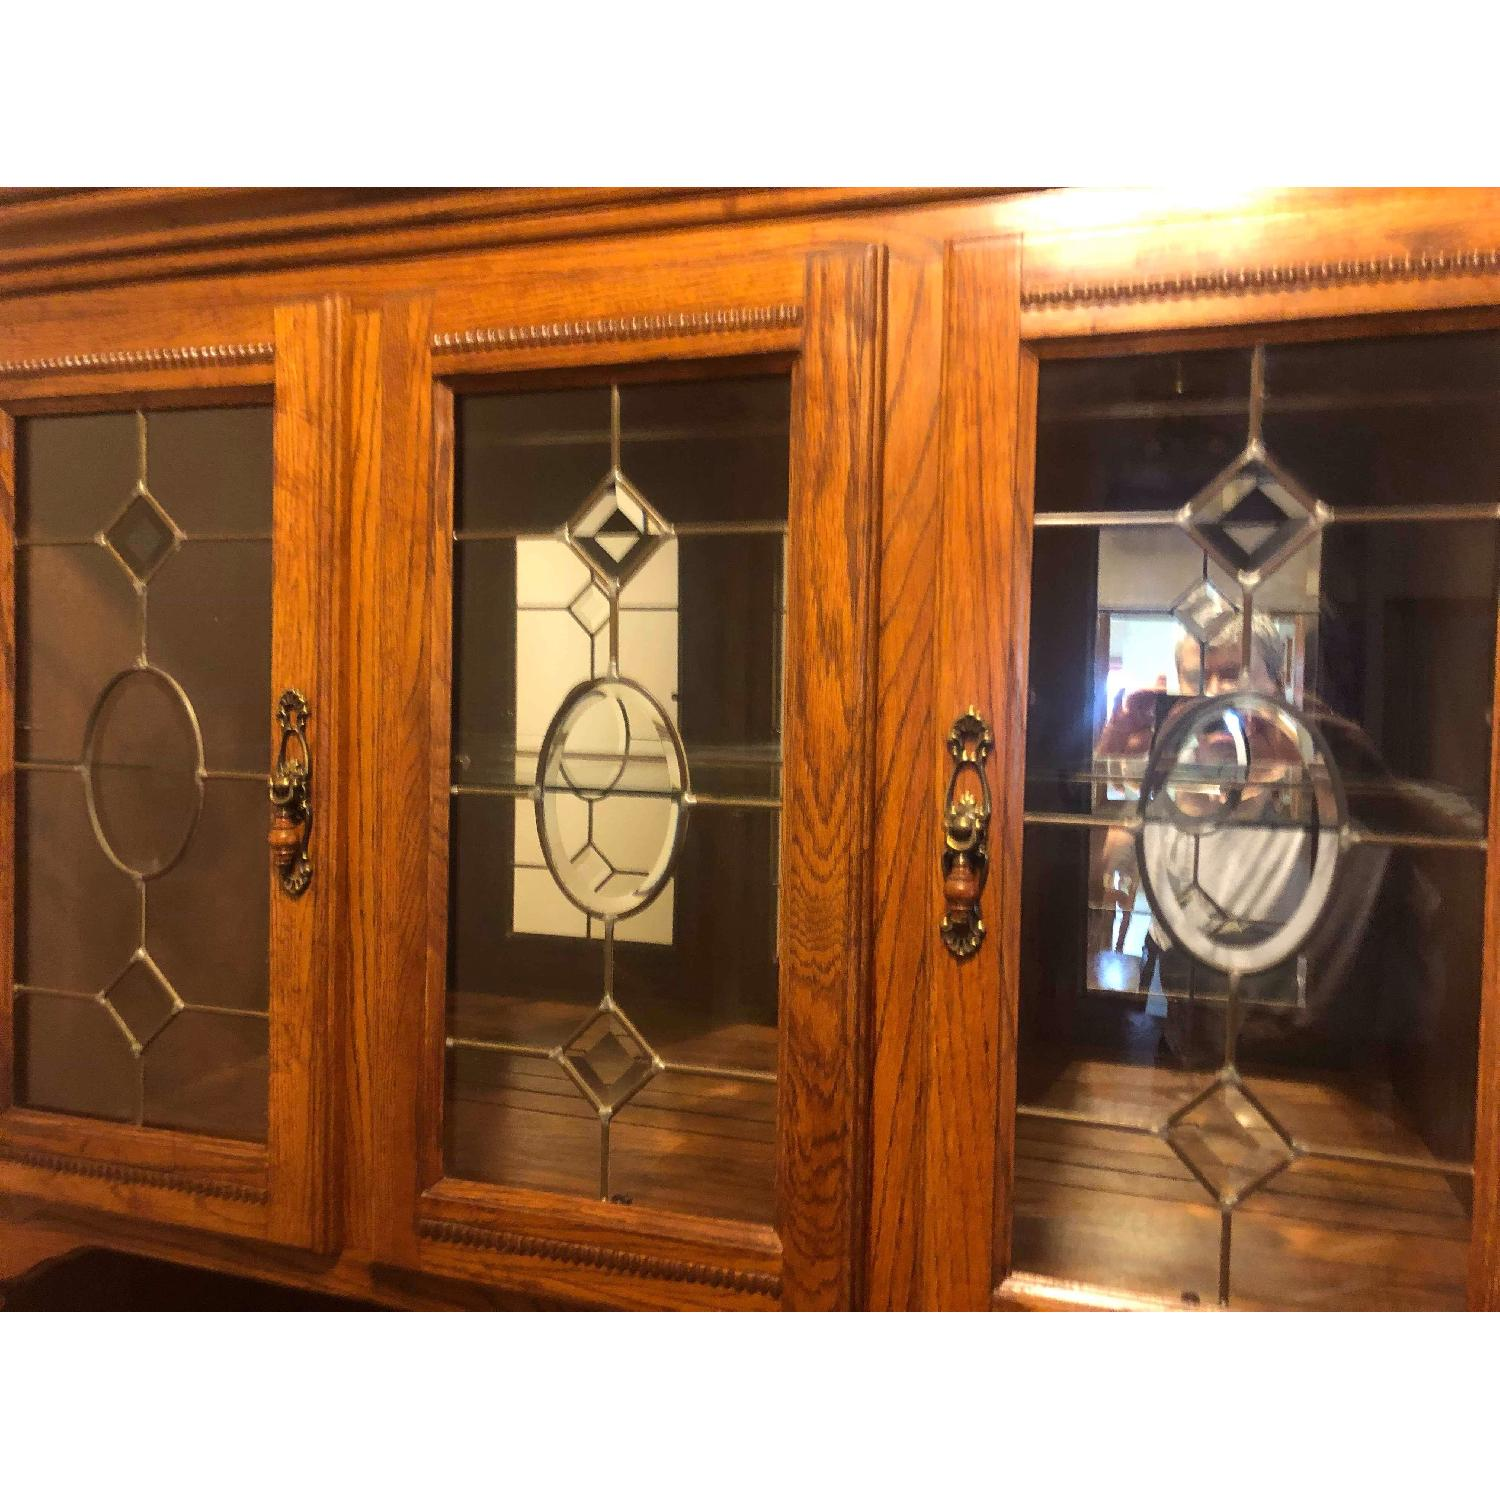 Solid Wood Early American Style Hutch w/ Lights - image-12